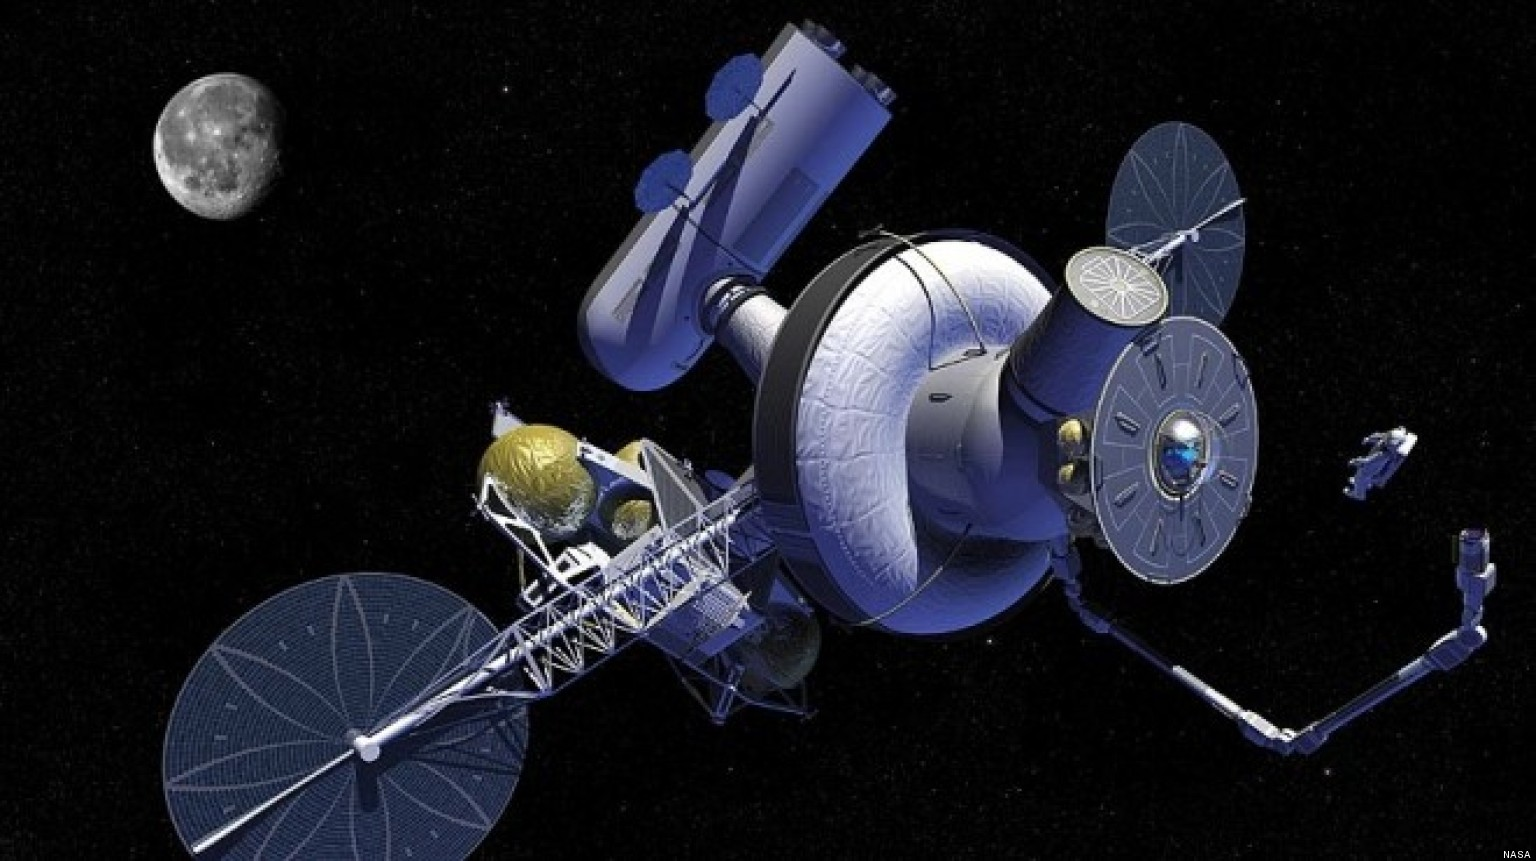 L-2 Outpost: NASA Considers Earth-Moon Way Station That ...